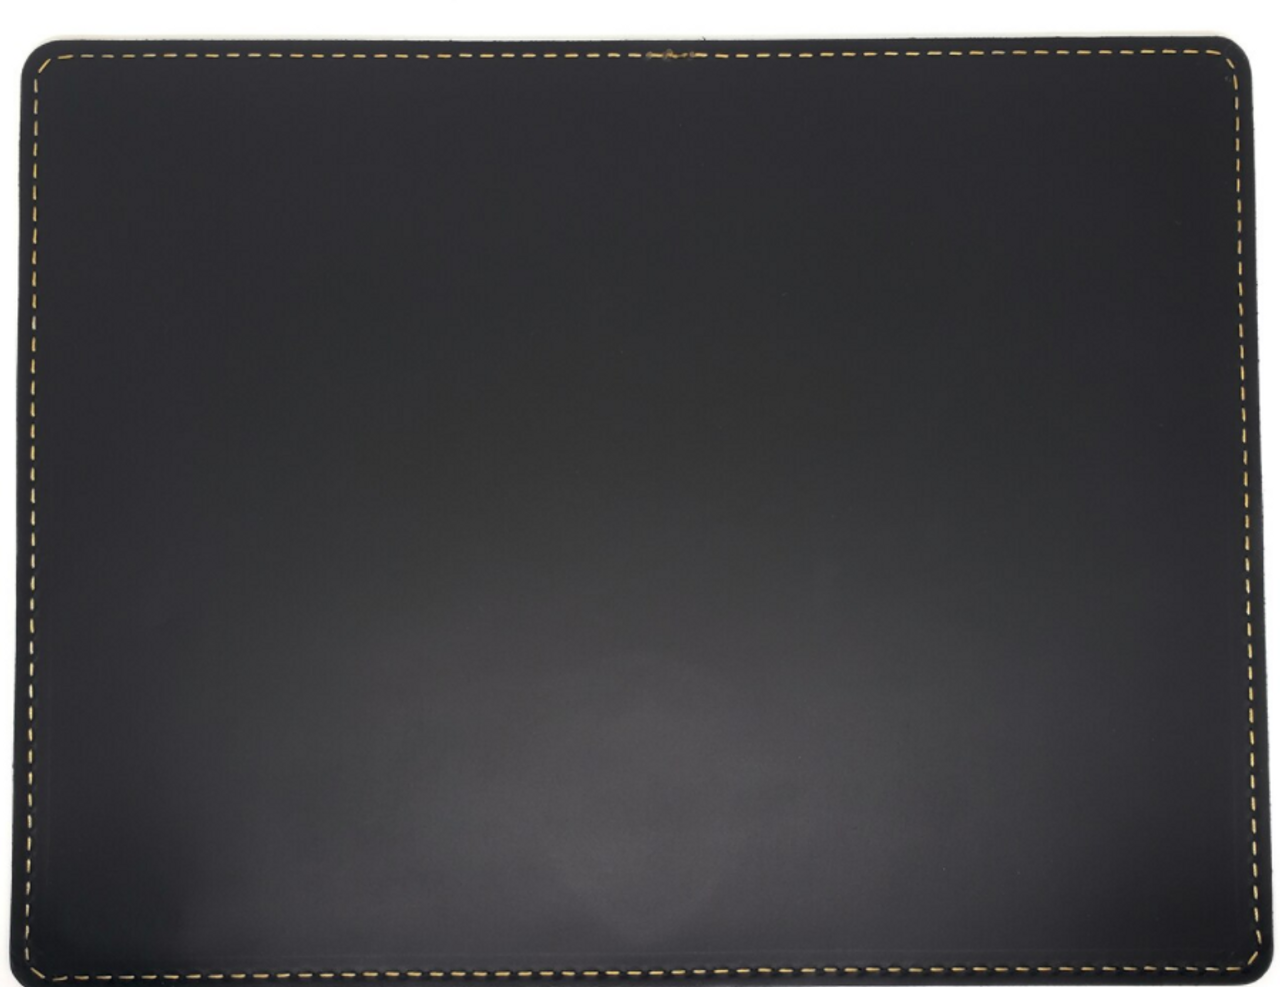 BWEISS Leather / REC Exclusive Leather Work Mat w/ Cutout